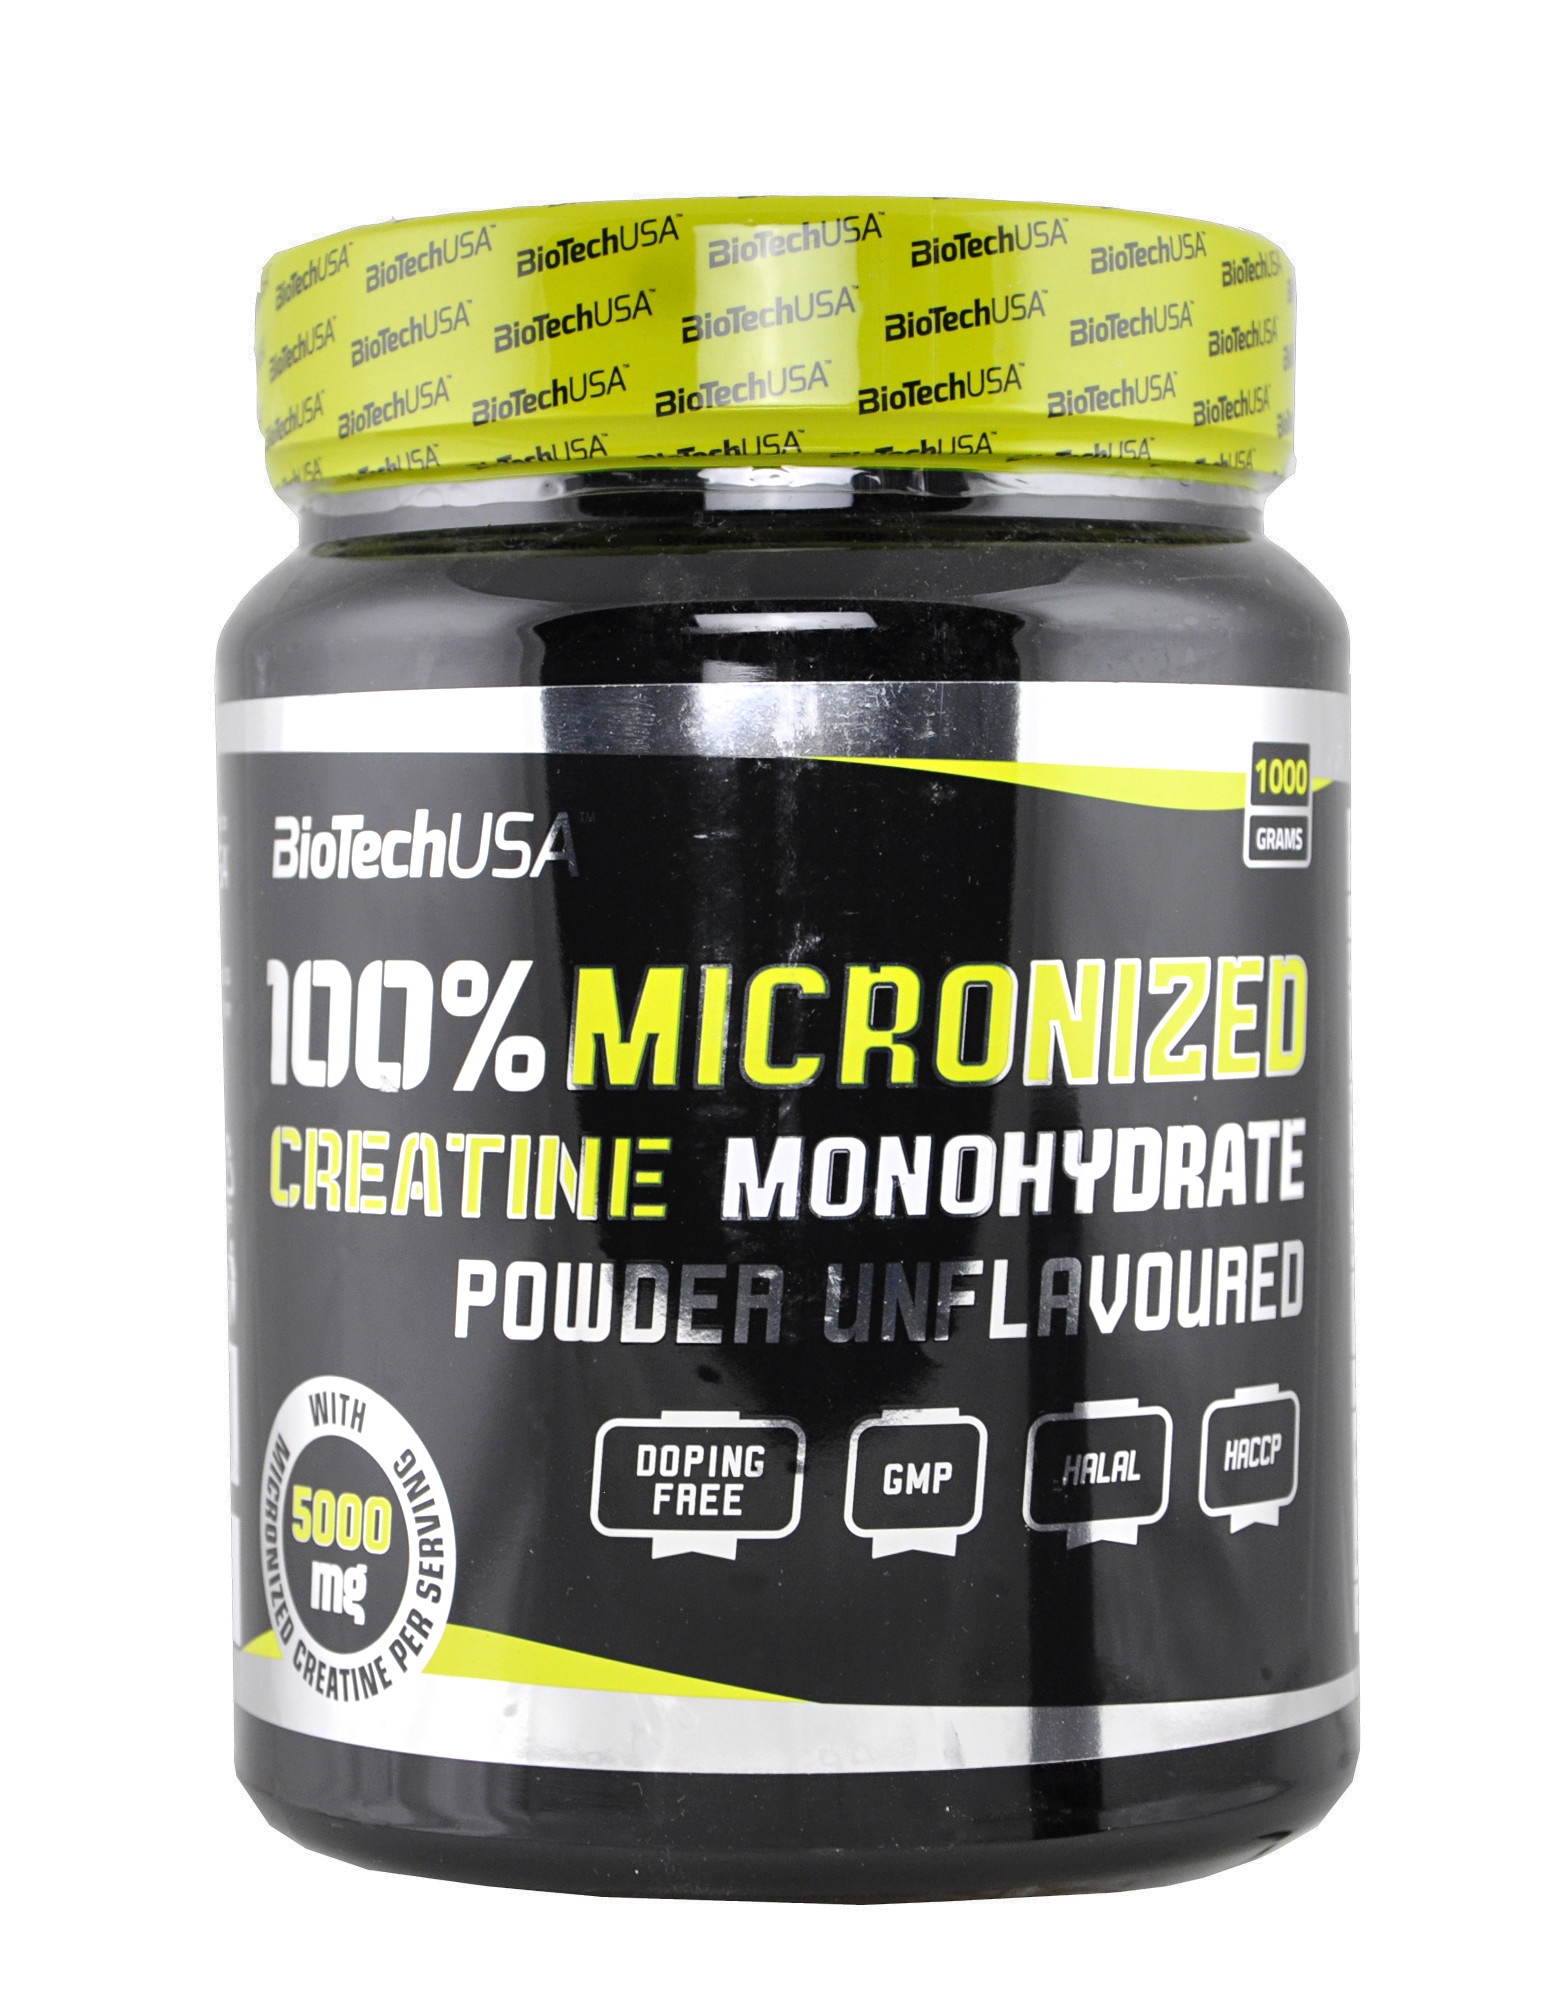 Micronized creatine monohydrate review